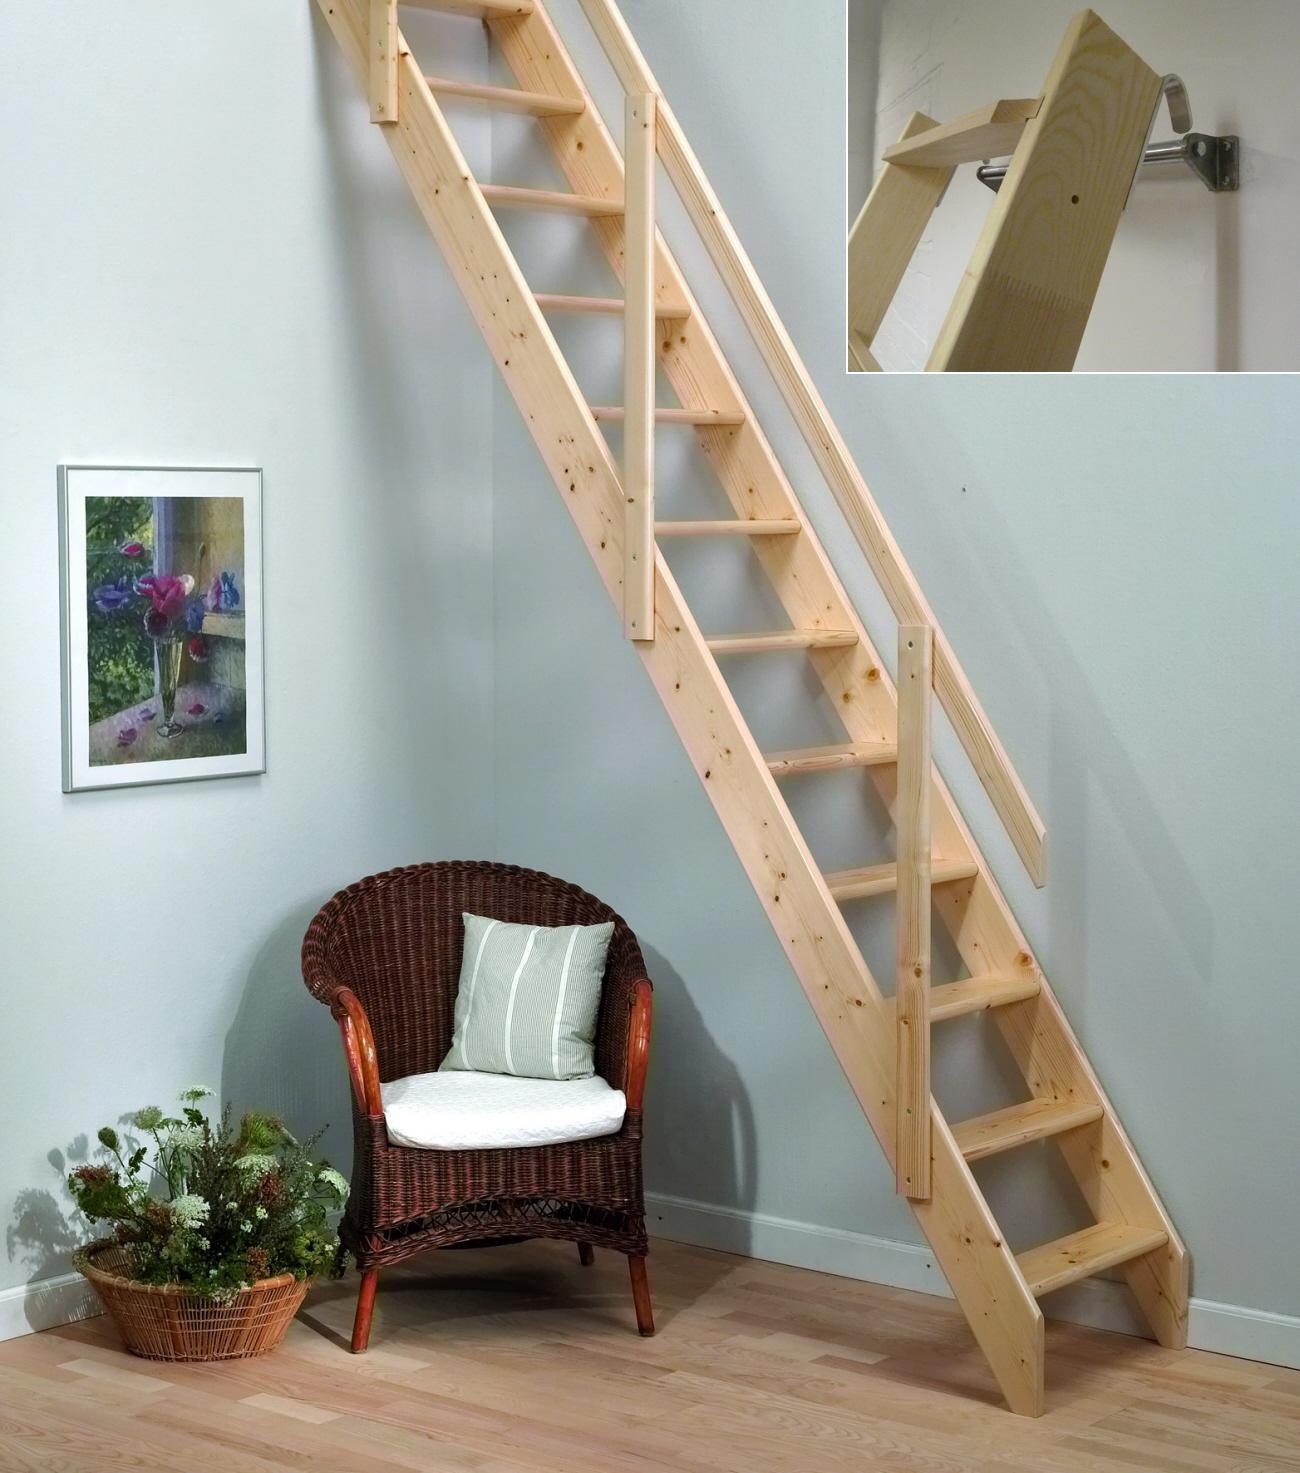 Staircase Designs For Small House Wooden Staircase Design Wooden Staircase For House